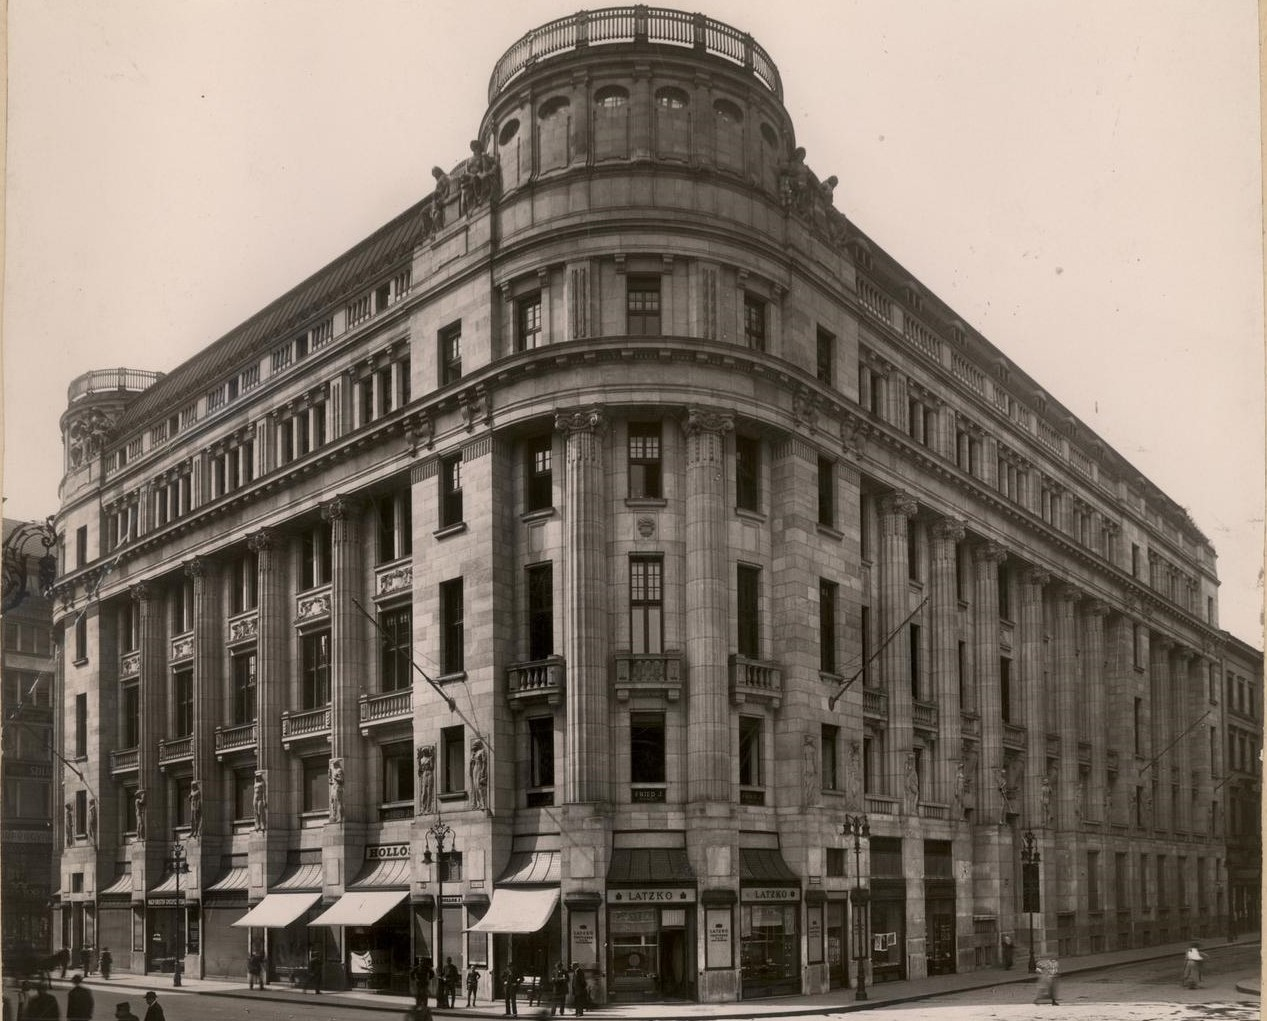 2._archive_image_of_the_building_from_1915_vaci1_budapest_hungary